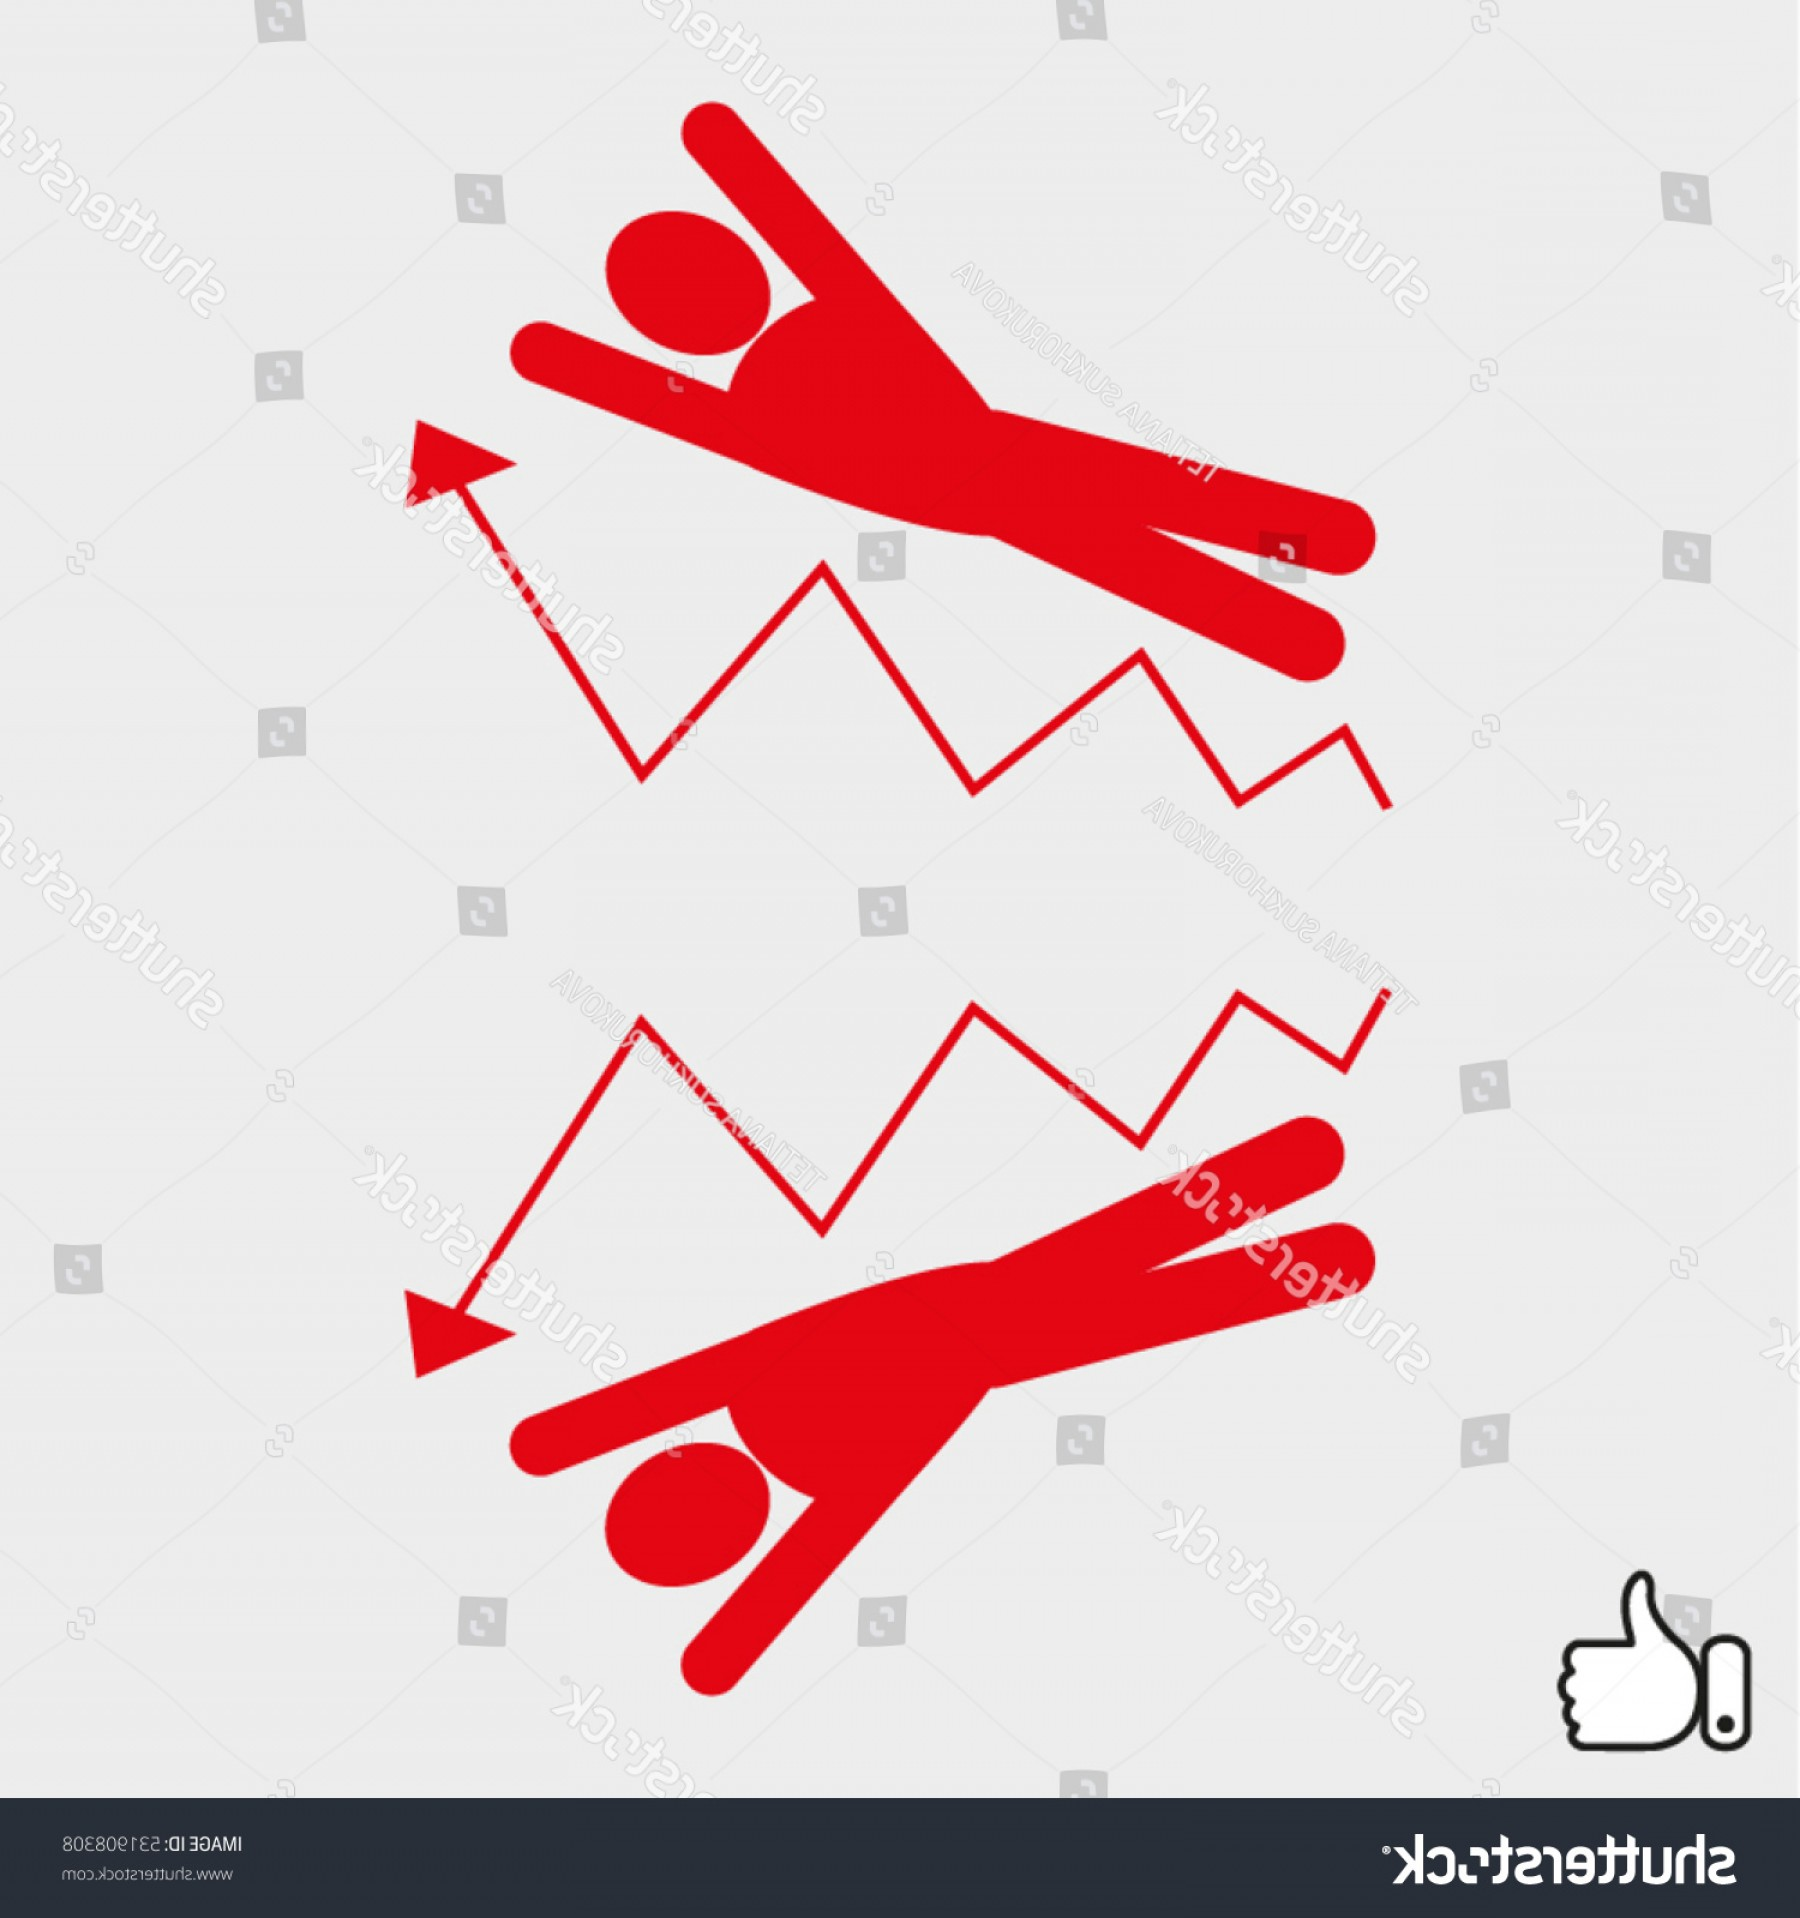 Growth Vector People: People Business Growth Fall Icon Vector